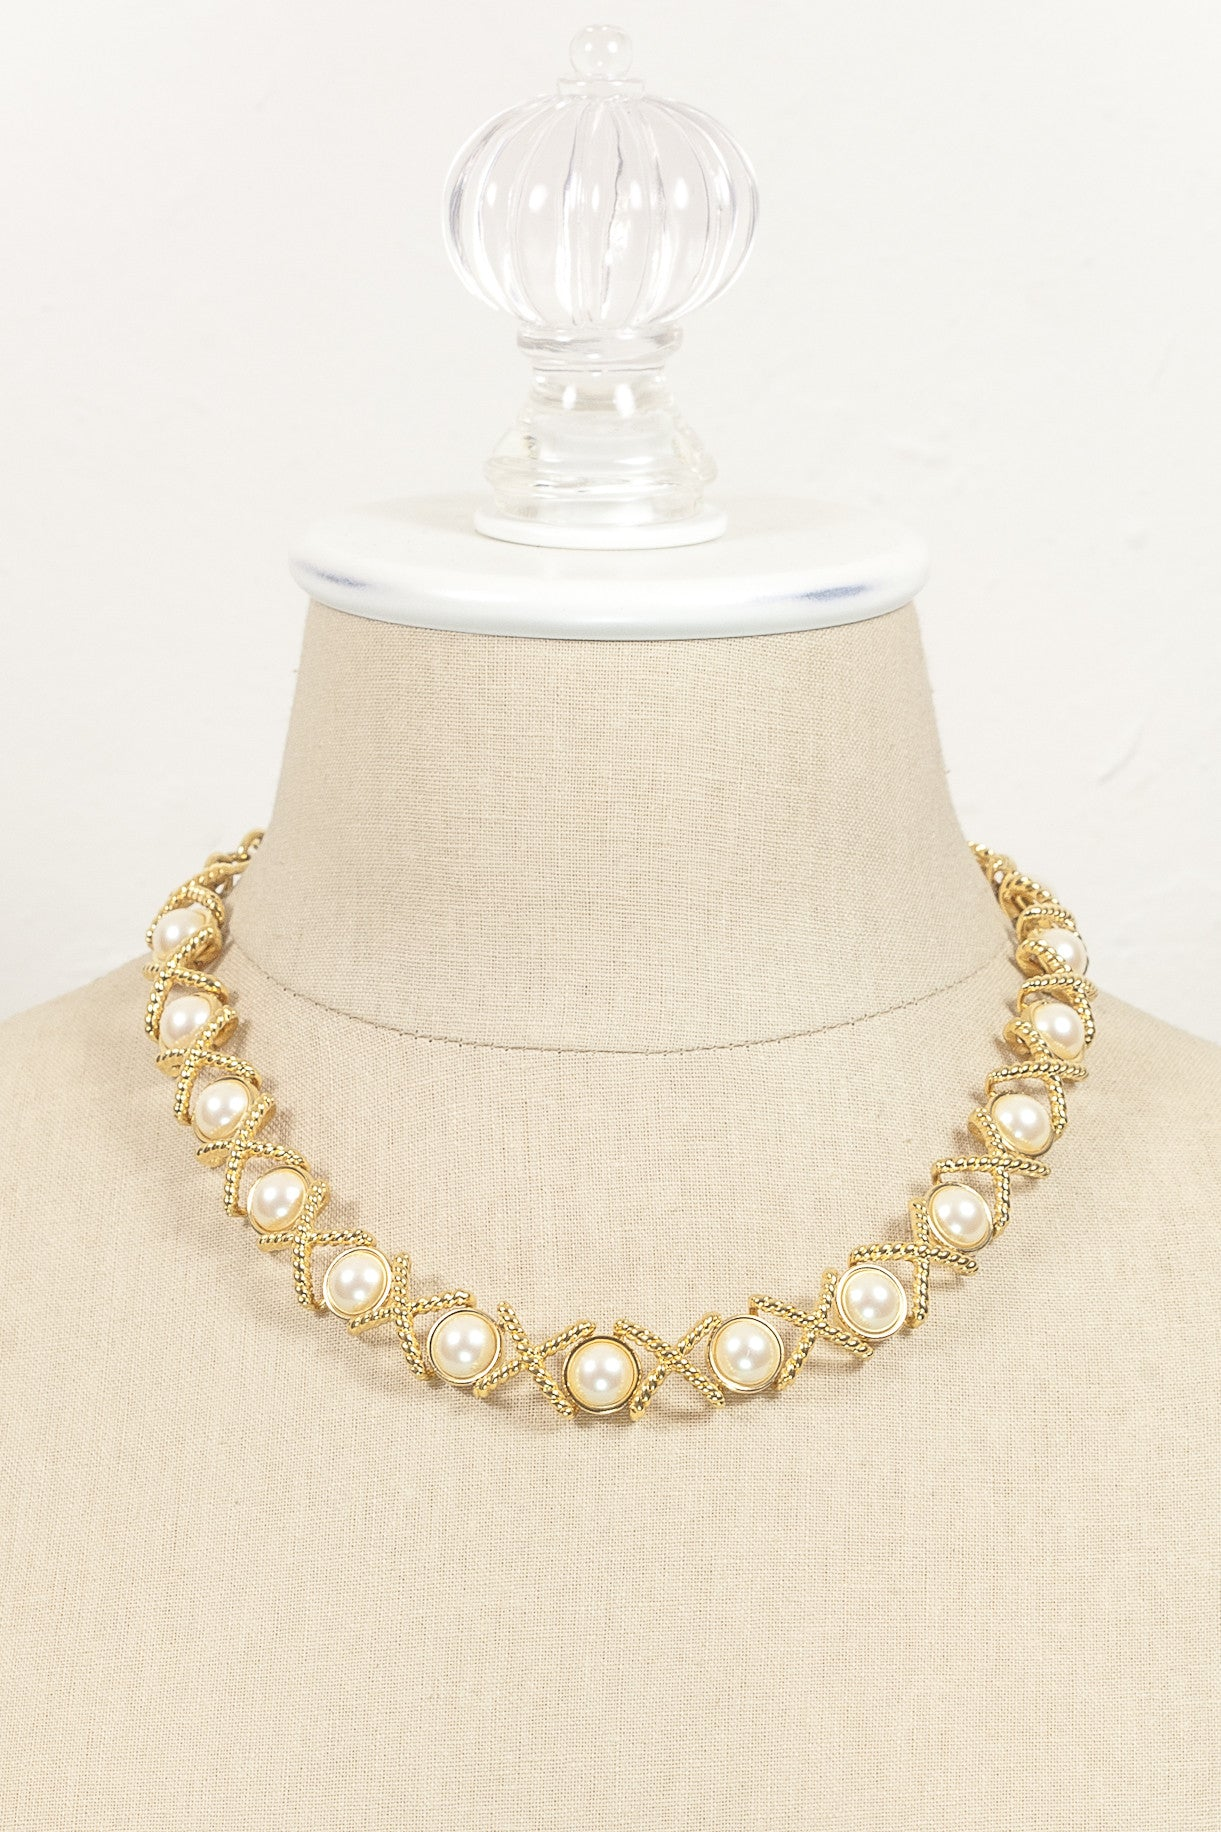 70's__Monet__Pearl X Link Necklace